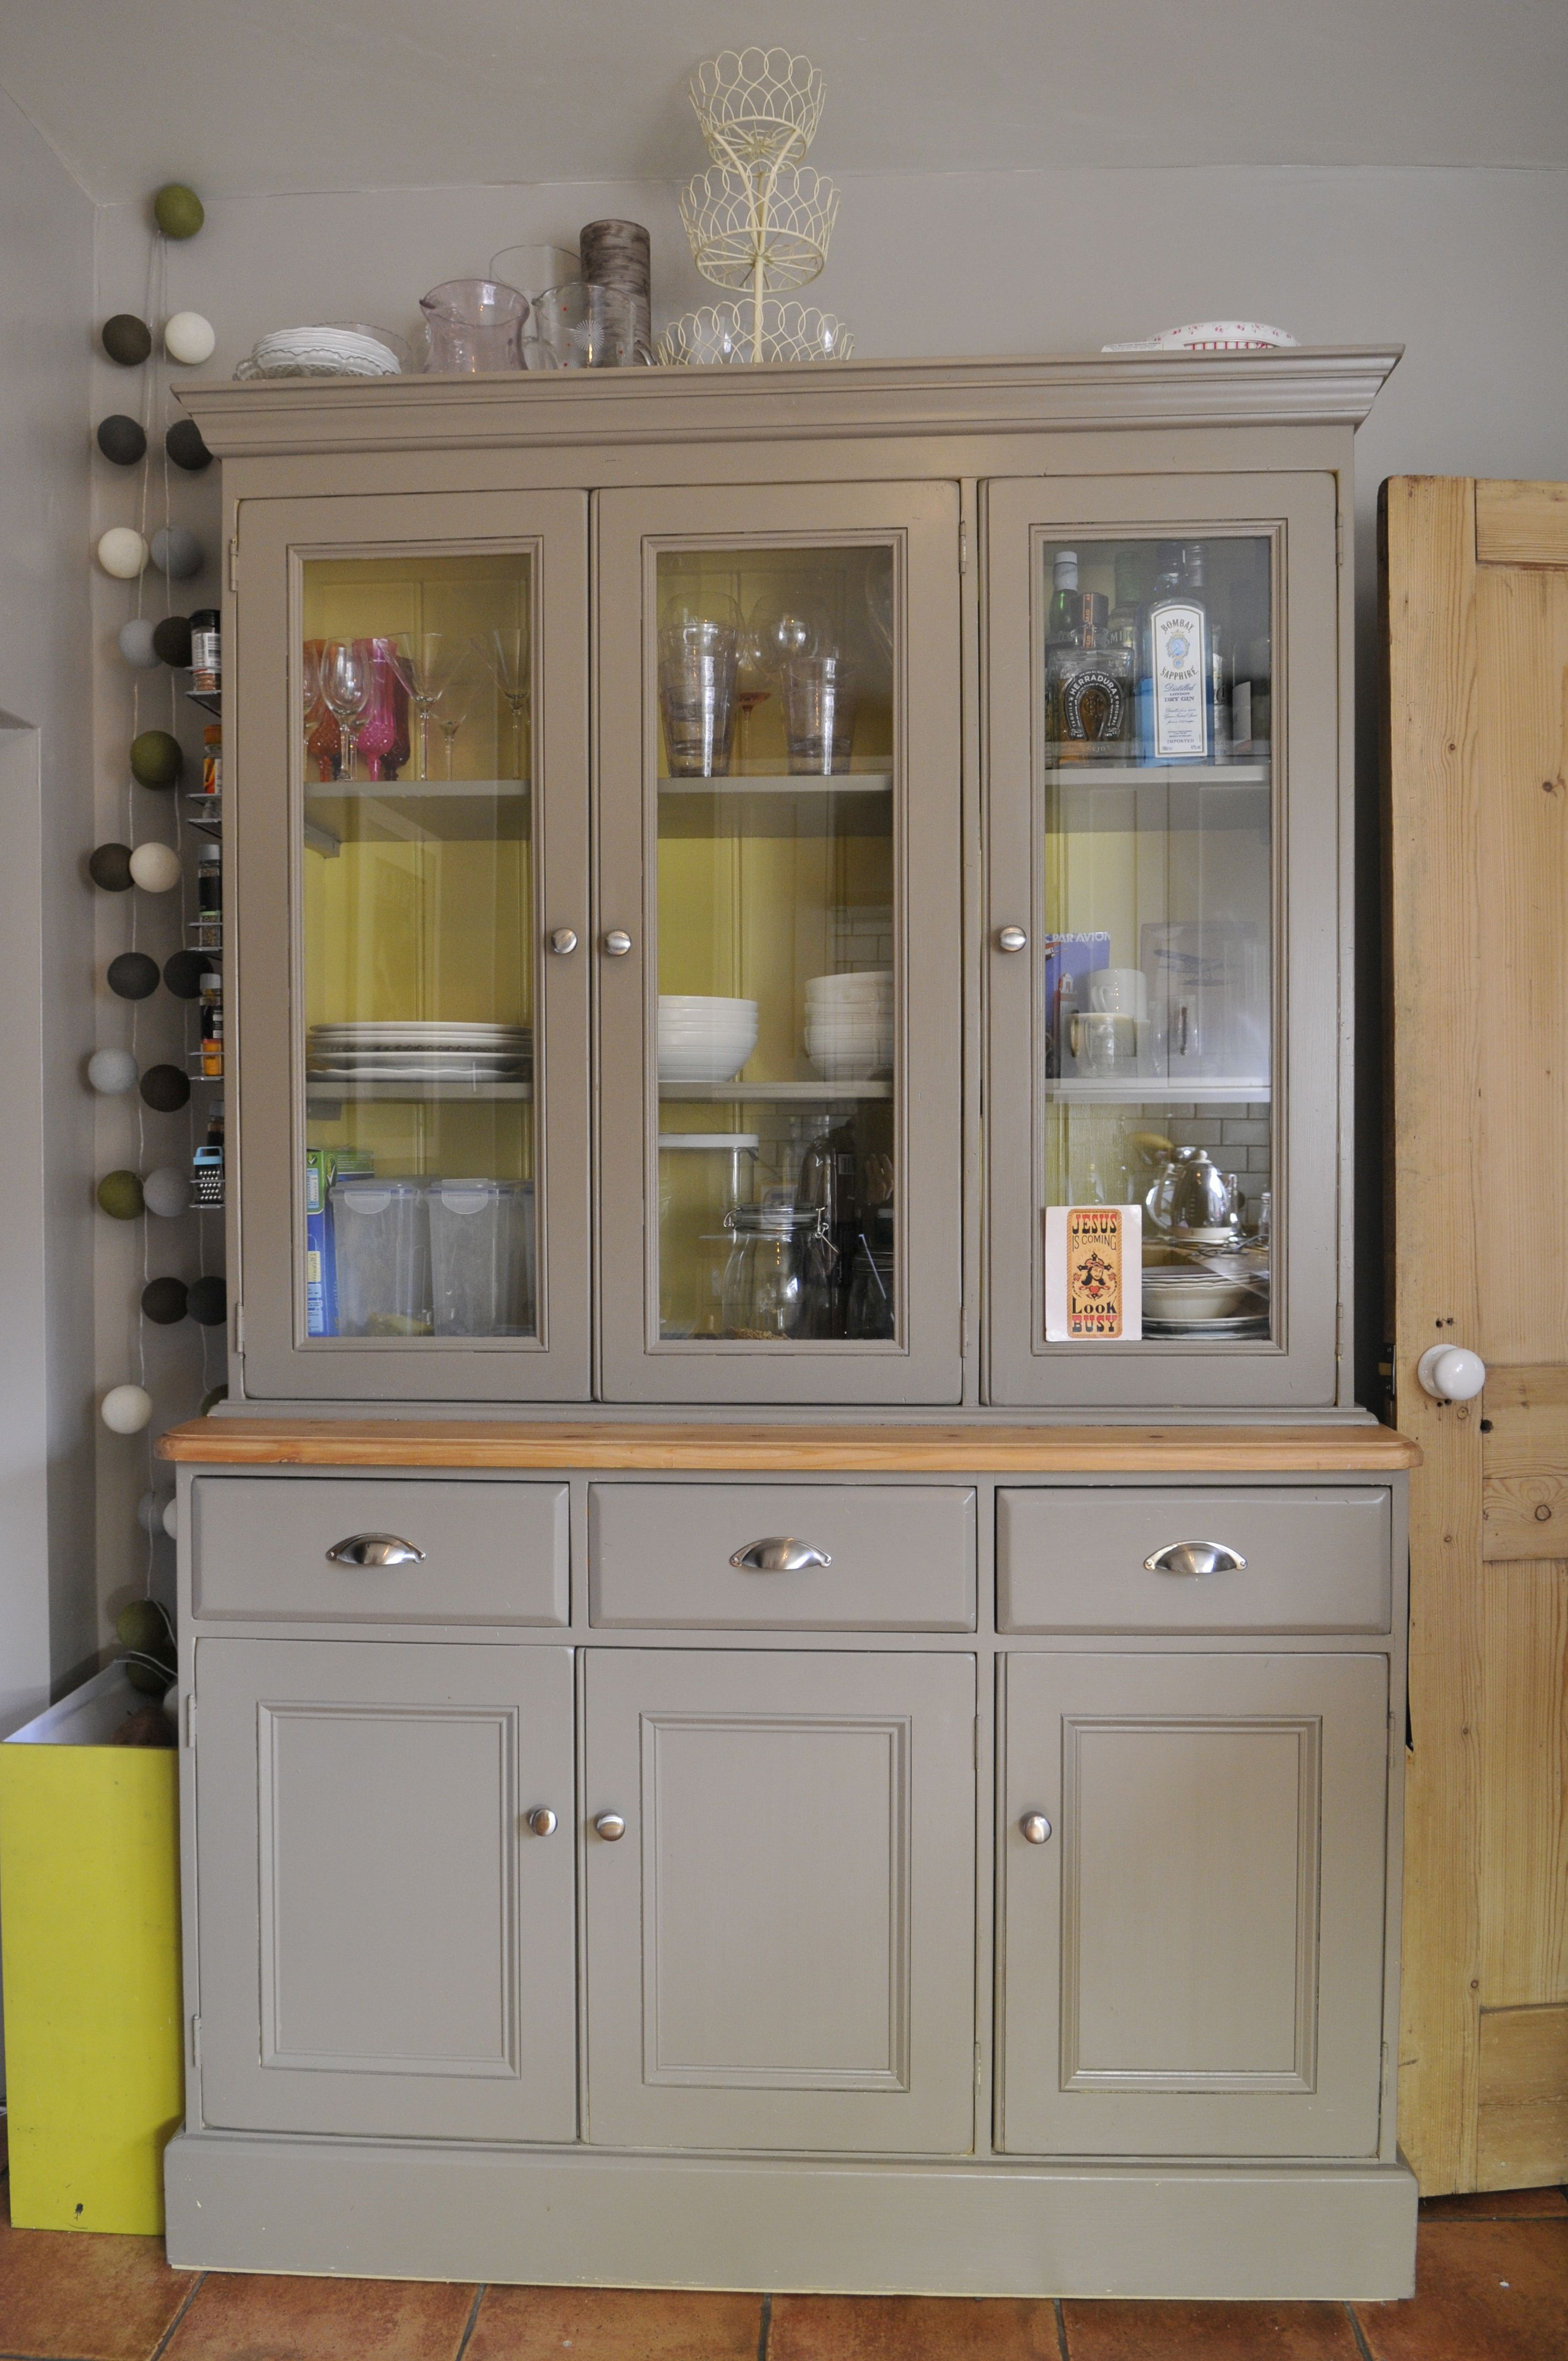 find this pin and more on kitchen dressers cabinets - Kitchen Dresser